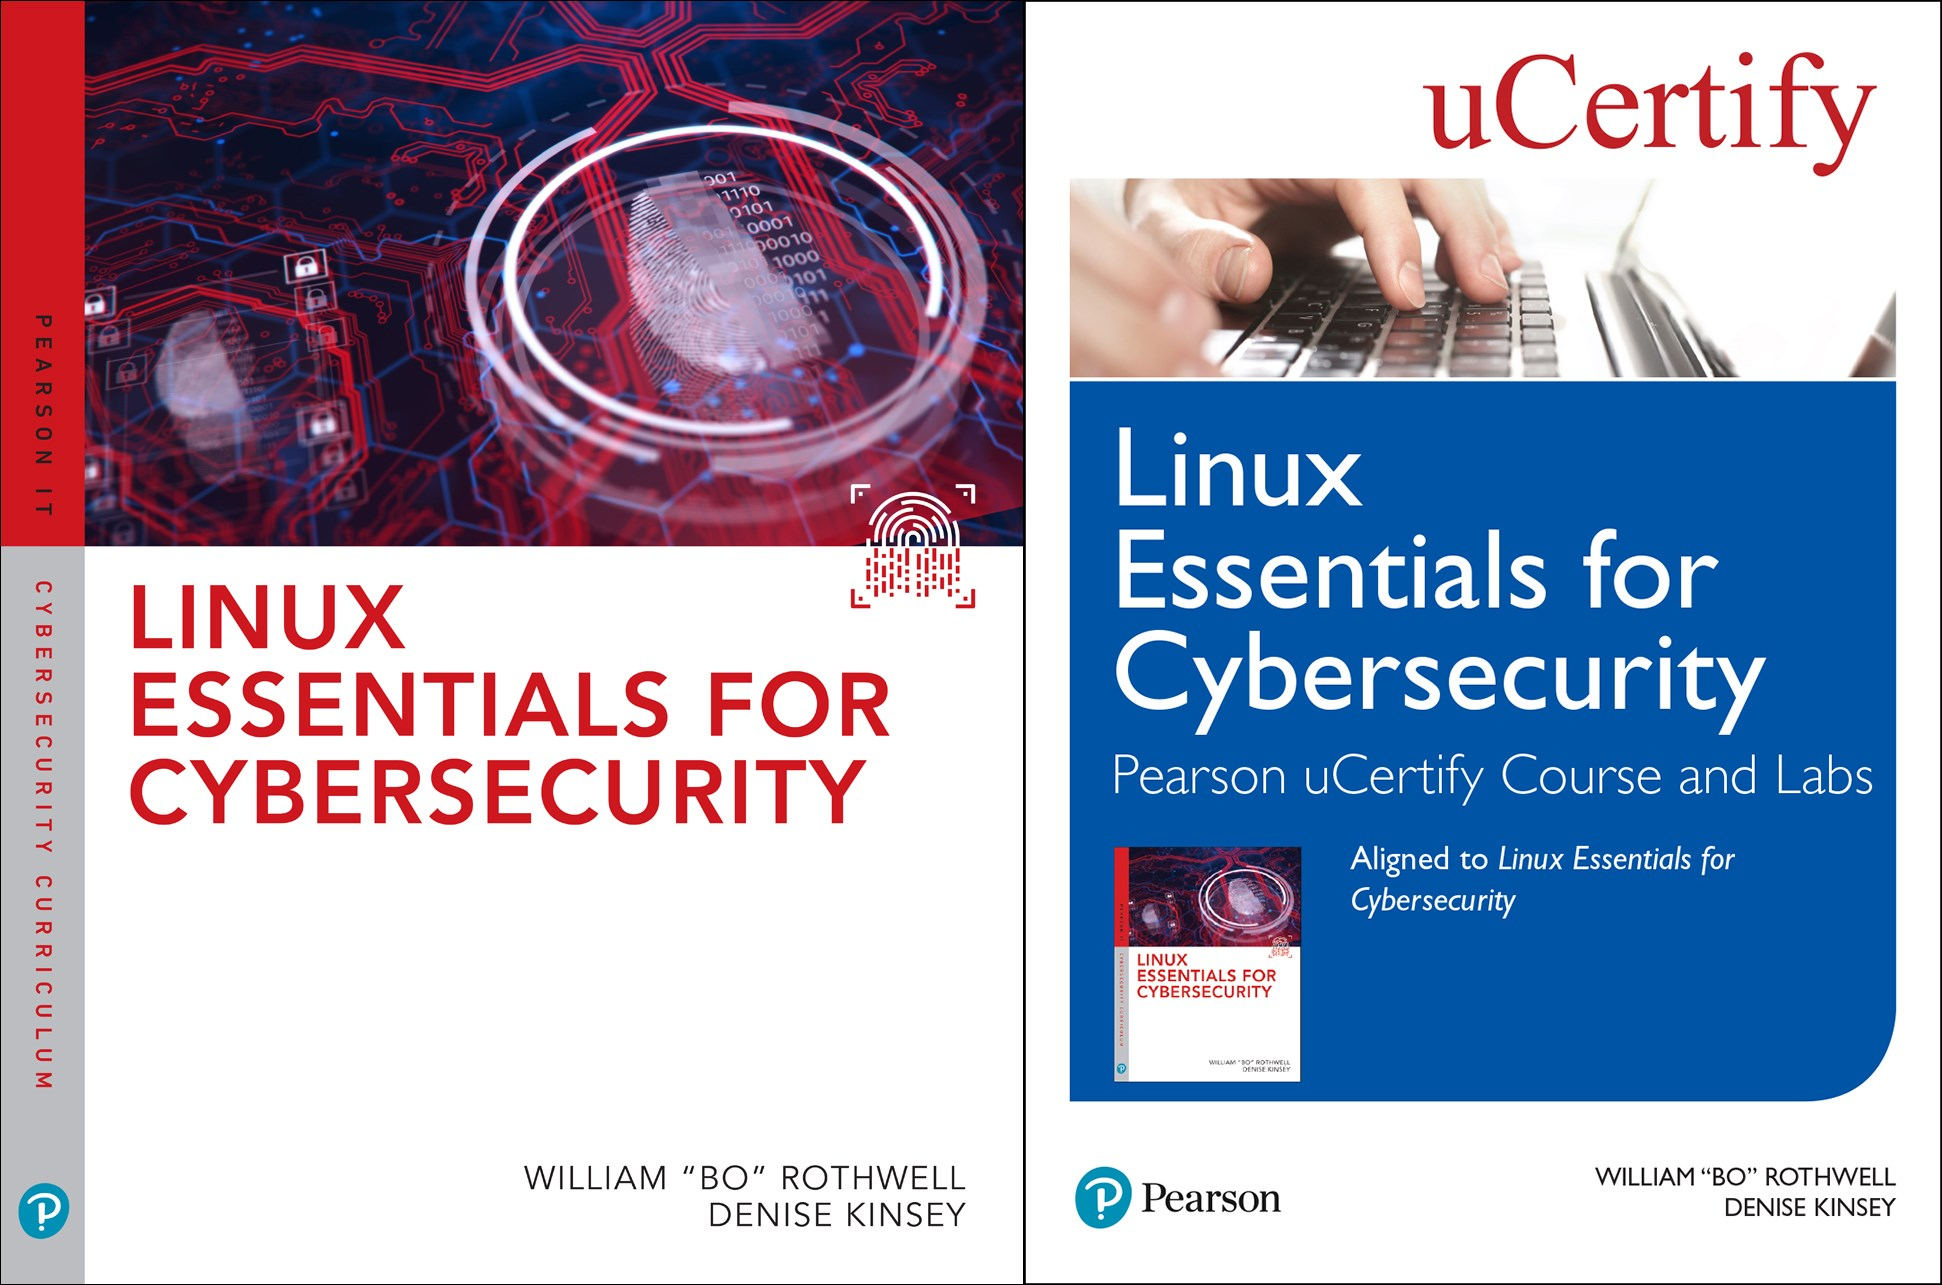 Linux Essentials for Cybersecurity Pearson uCertify Course and Labs and Textbook Bundle